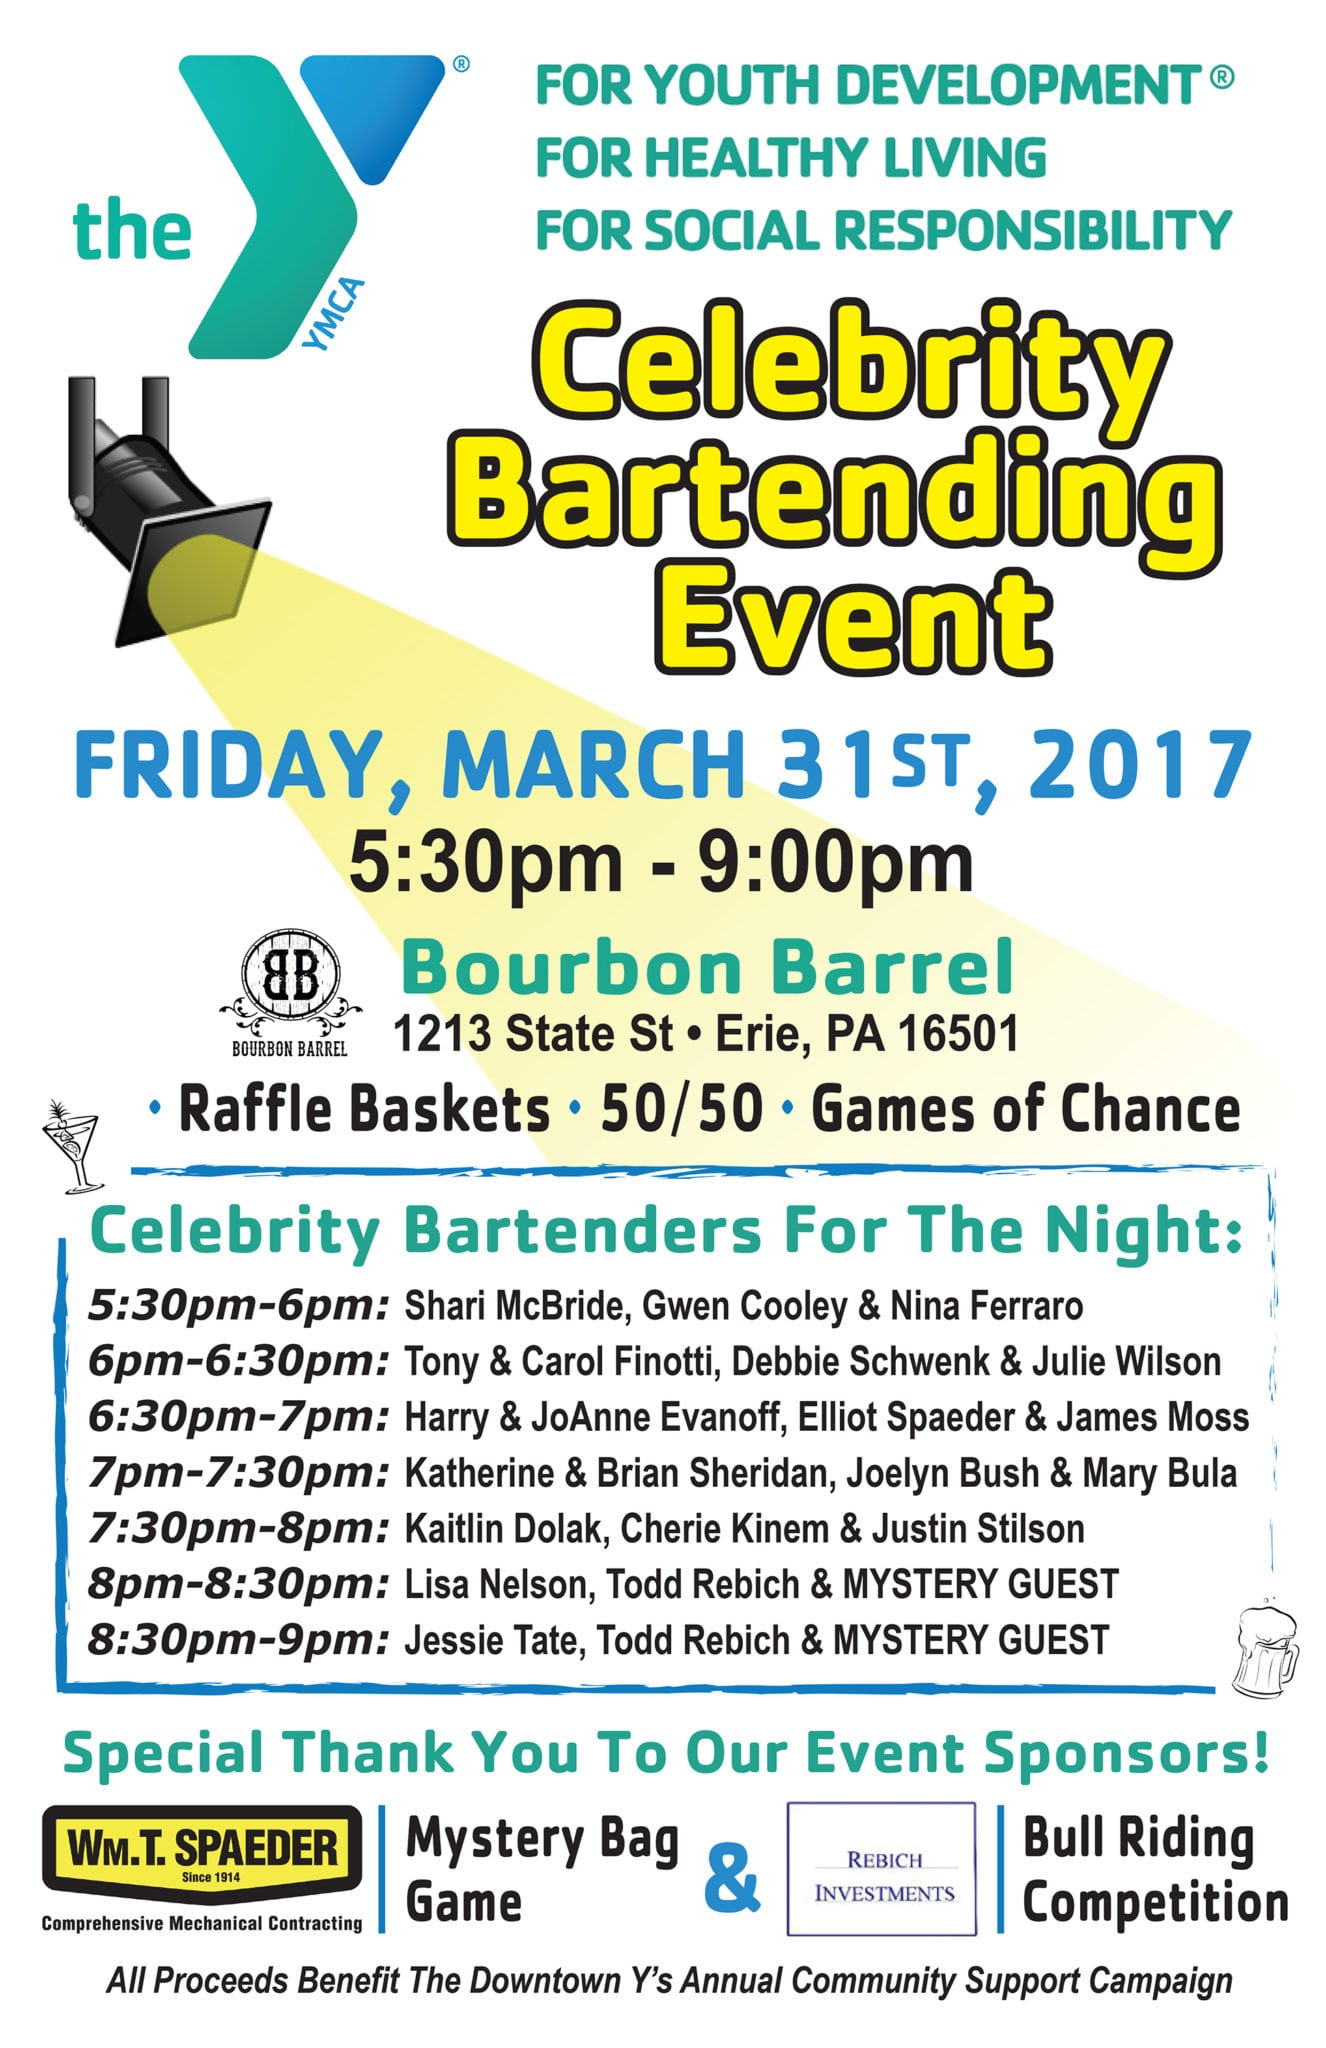 Downtown Y Celebrity Bartending Event